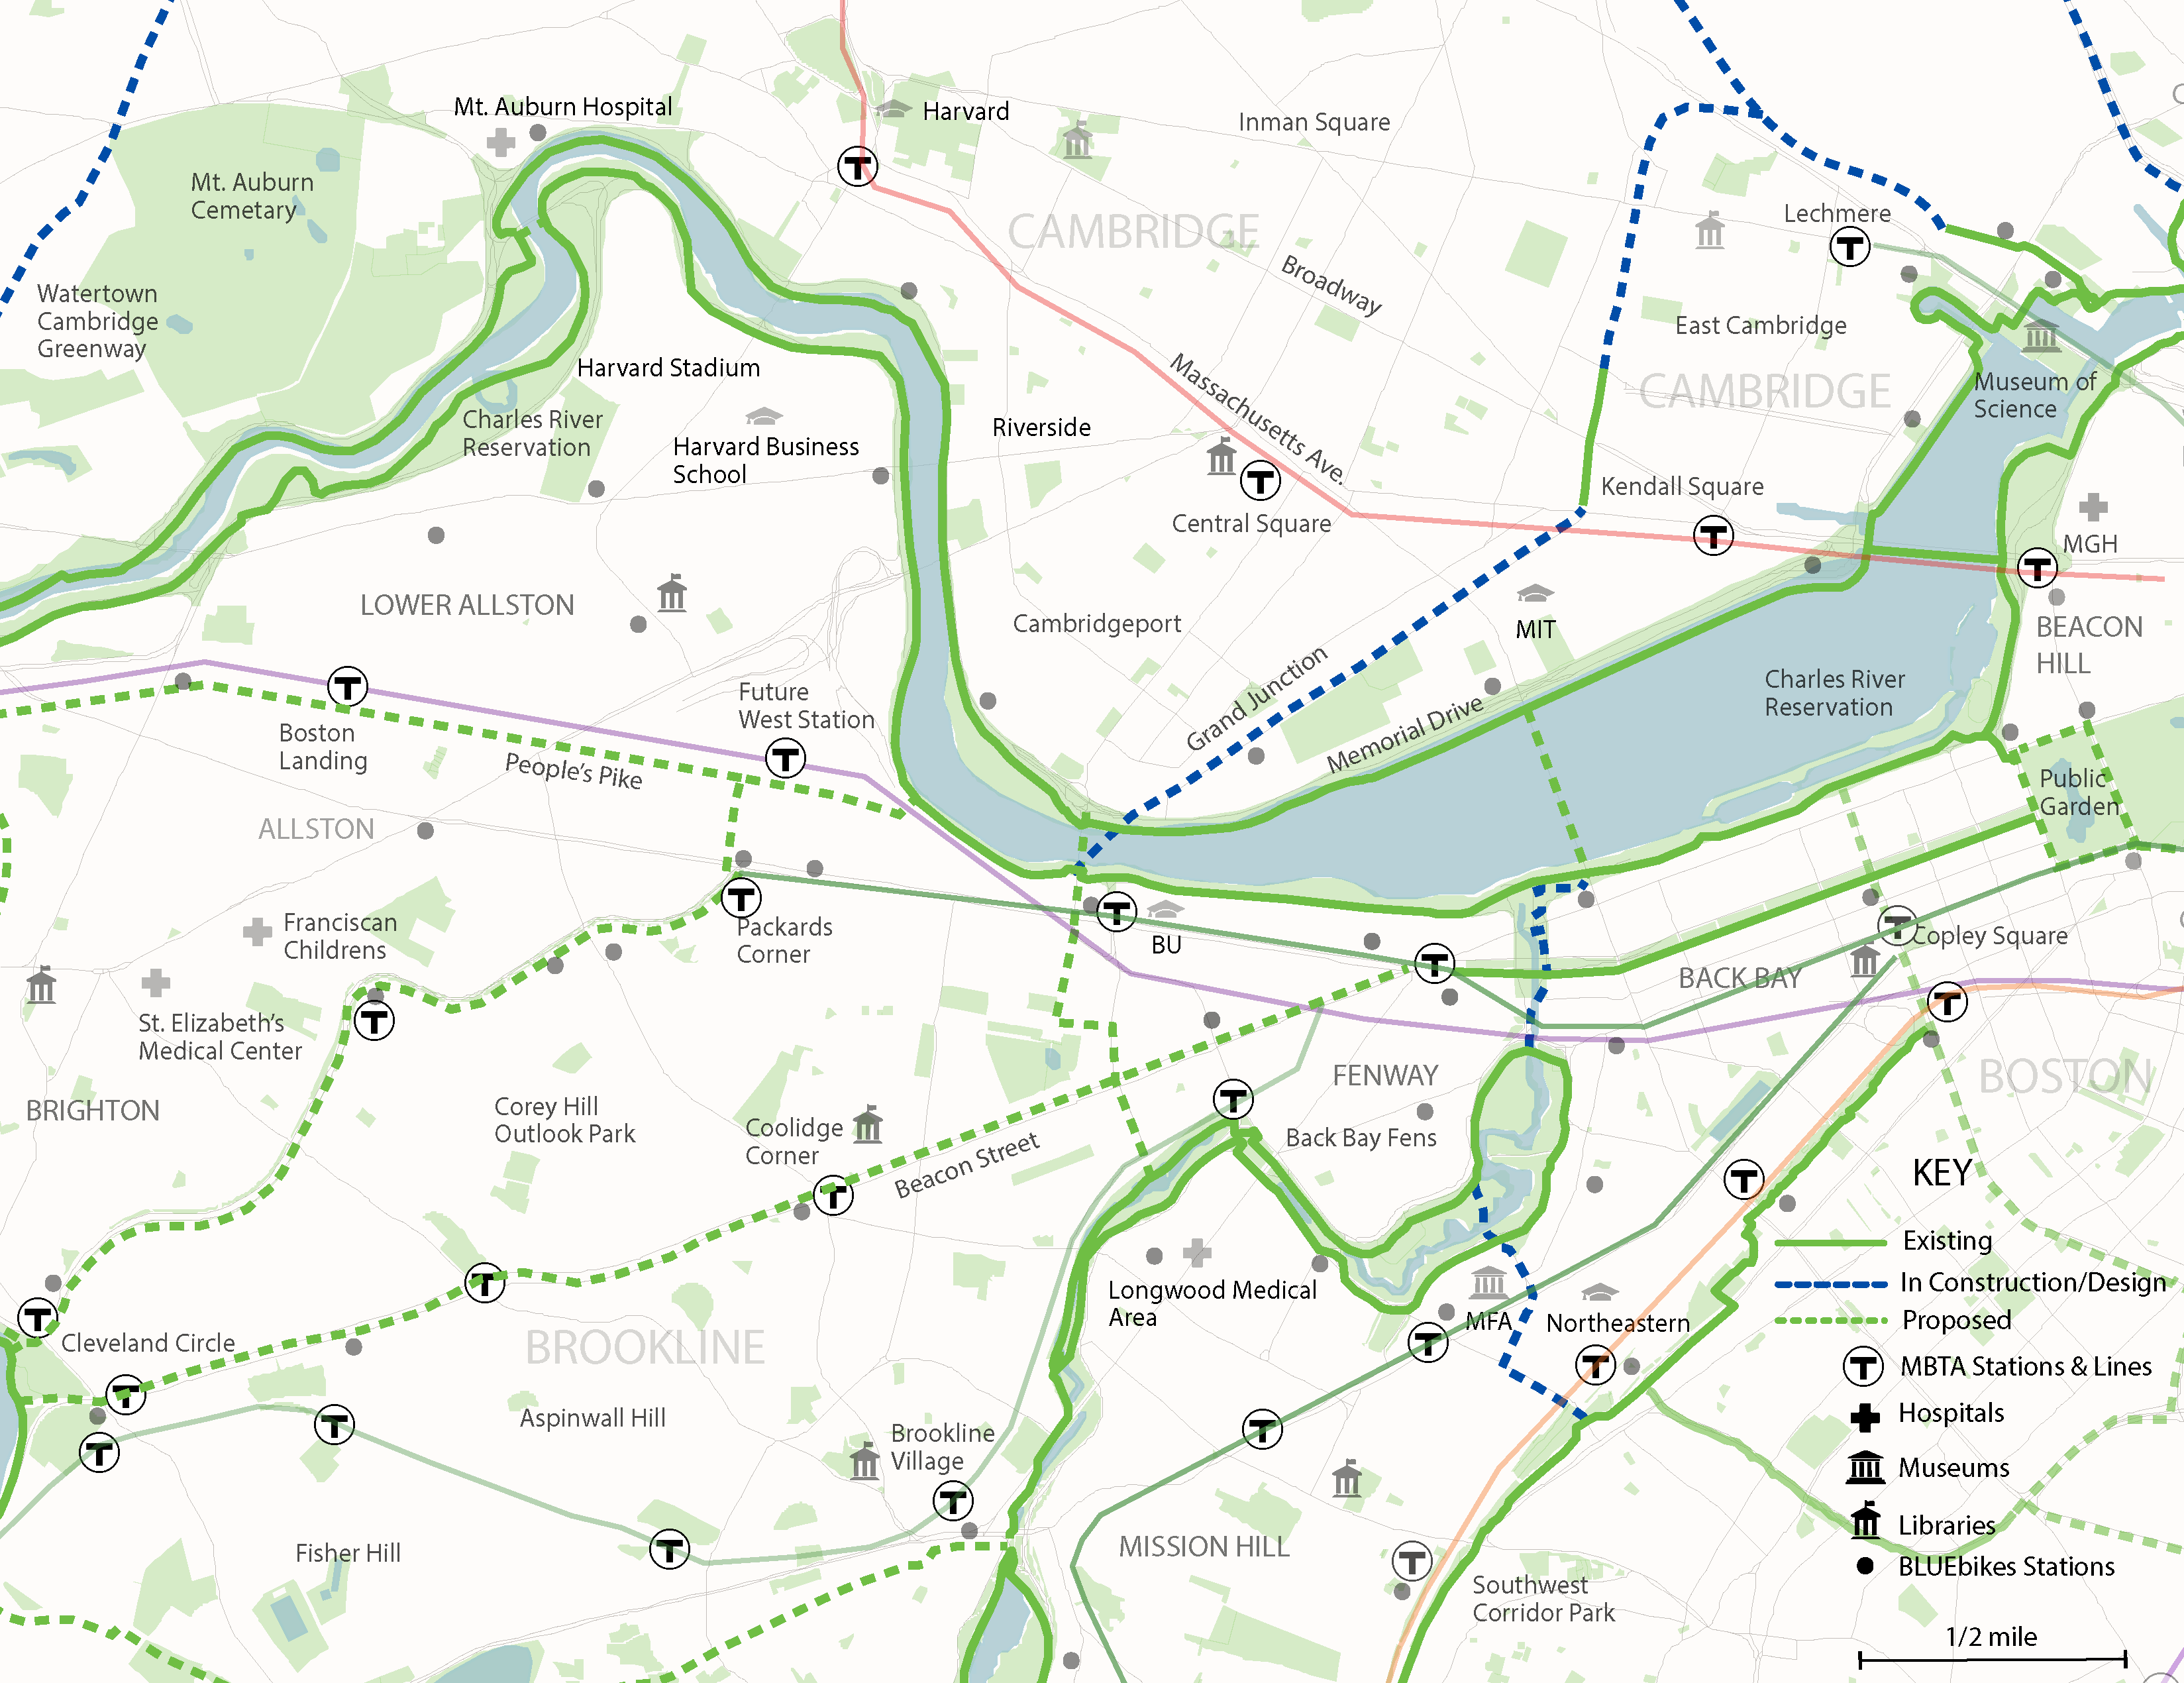 A map of the area around the BU bridge, showing existing, in construction, and proposed Greenway paths